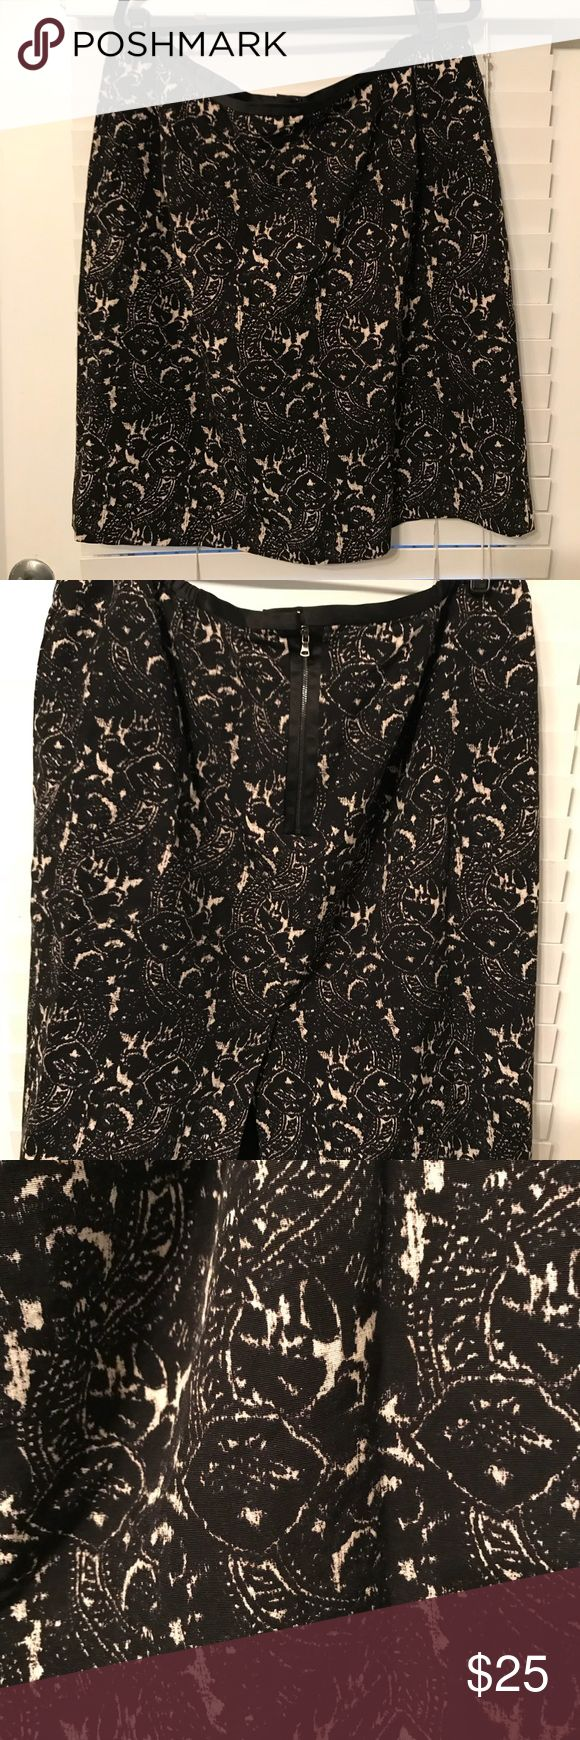 "Talbot's Women's pencil skirt - Plus Size Black and tan pencil skirt. Fully lined with back zipper.  24"" length Talbots Skirts Pencil"